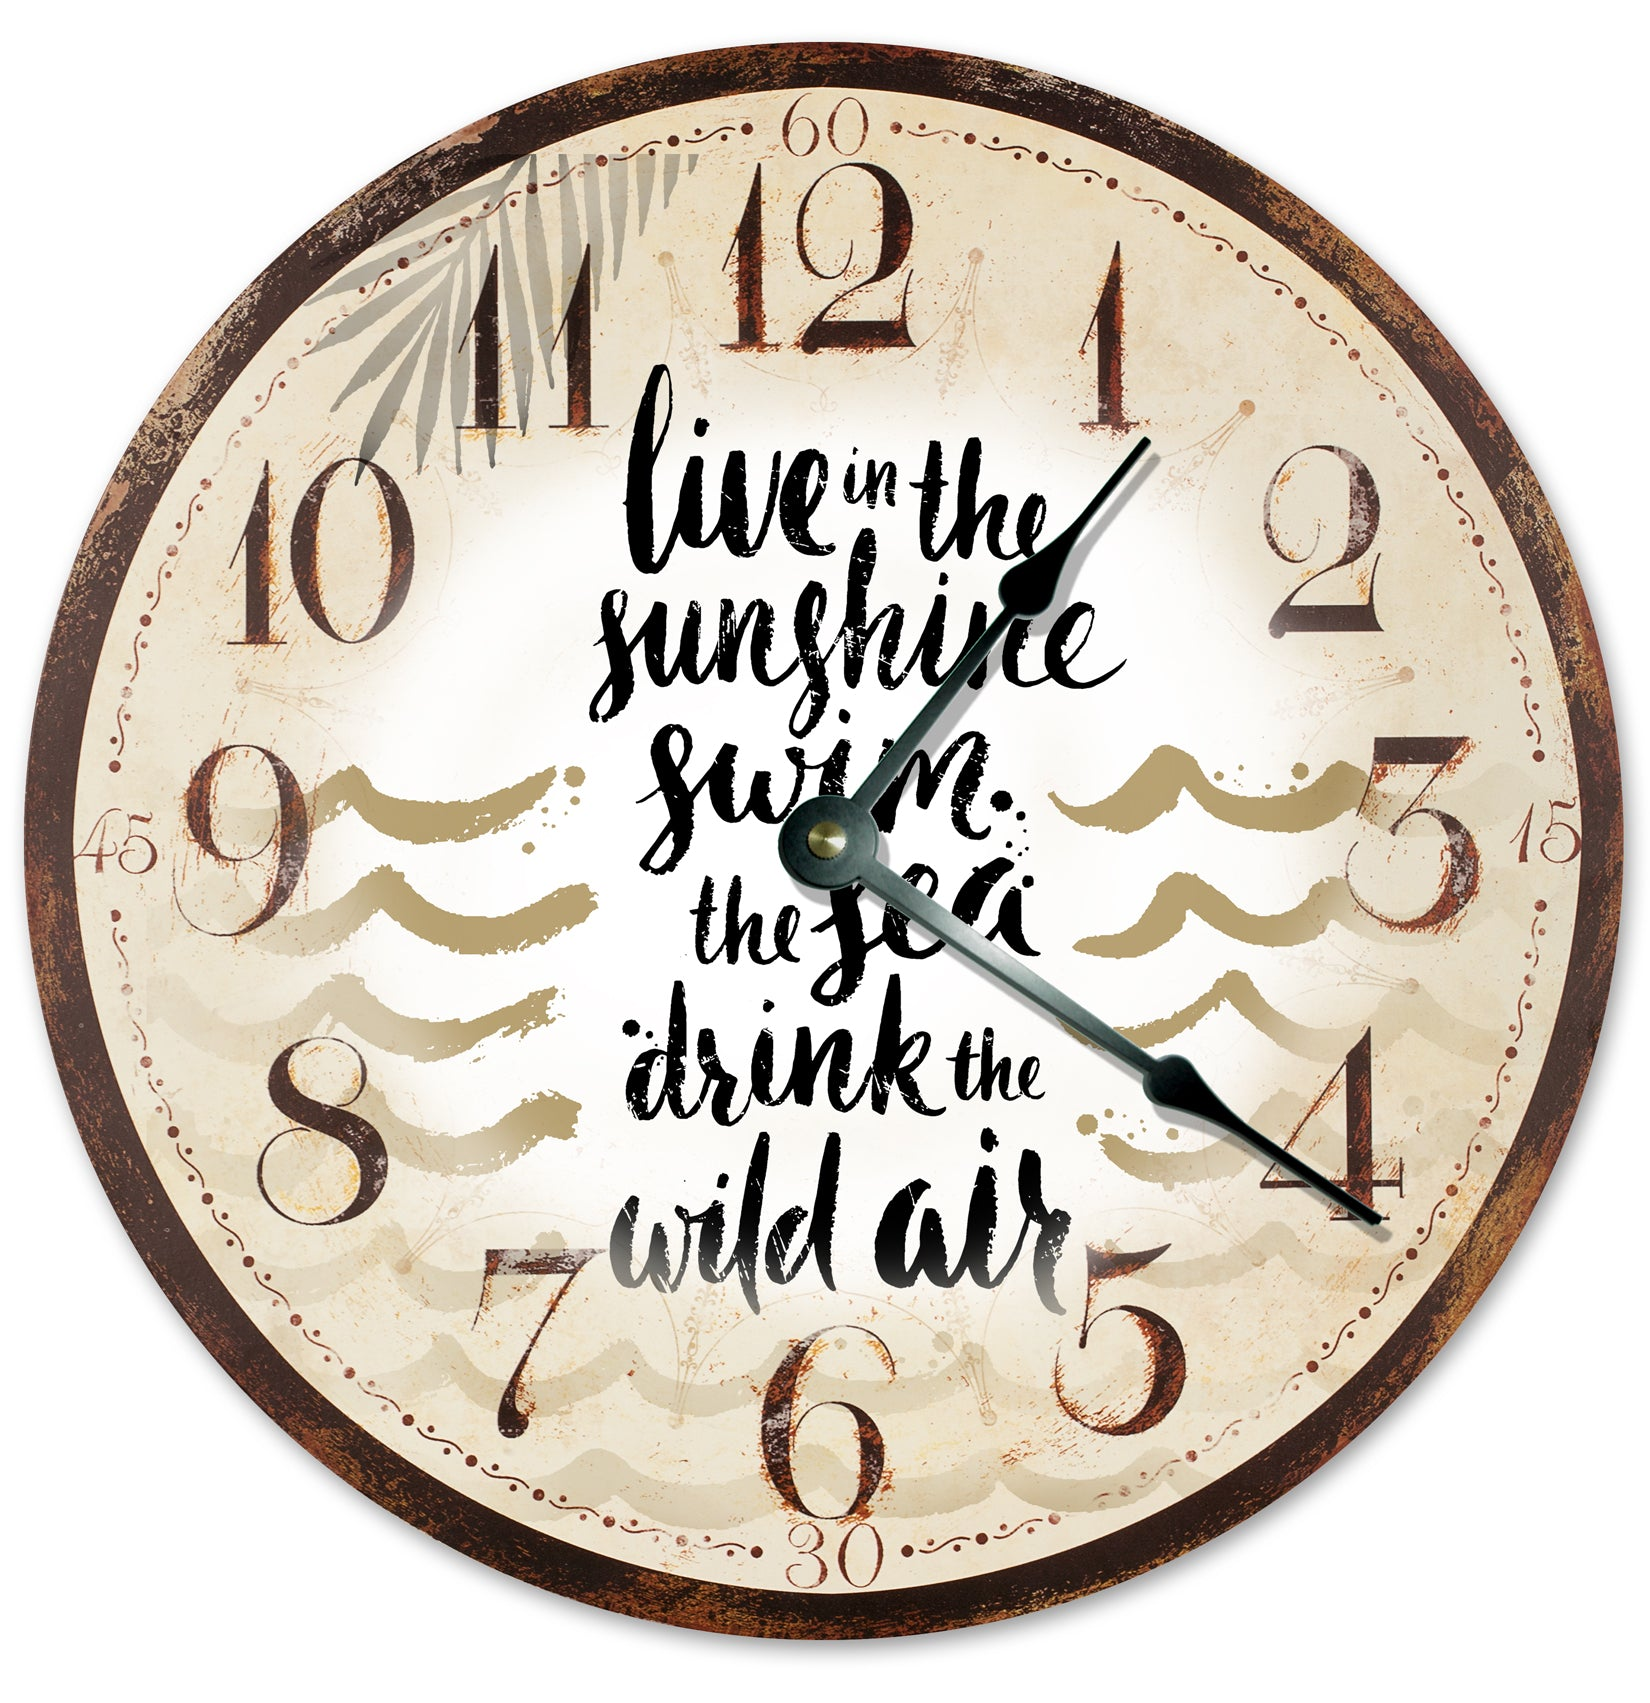 The Sunshine Wild Air Hanging Wall Clock